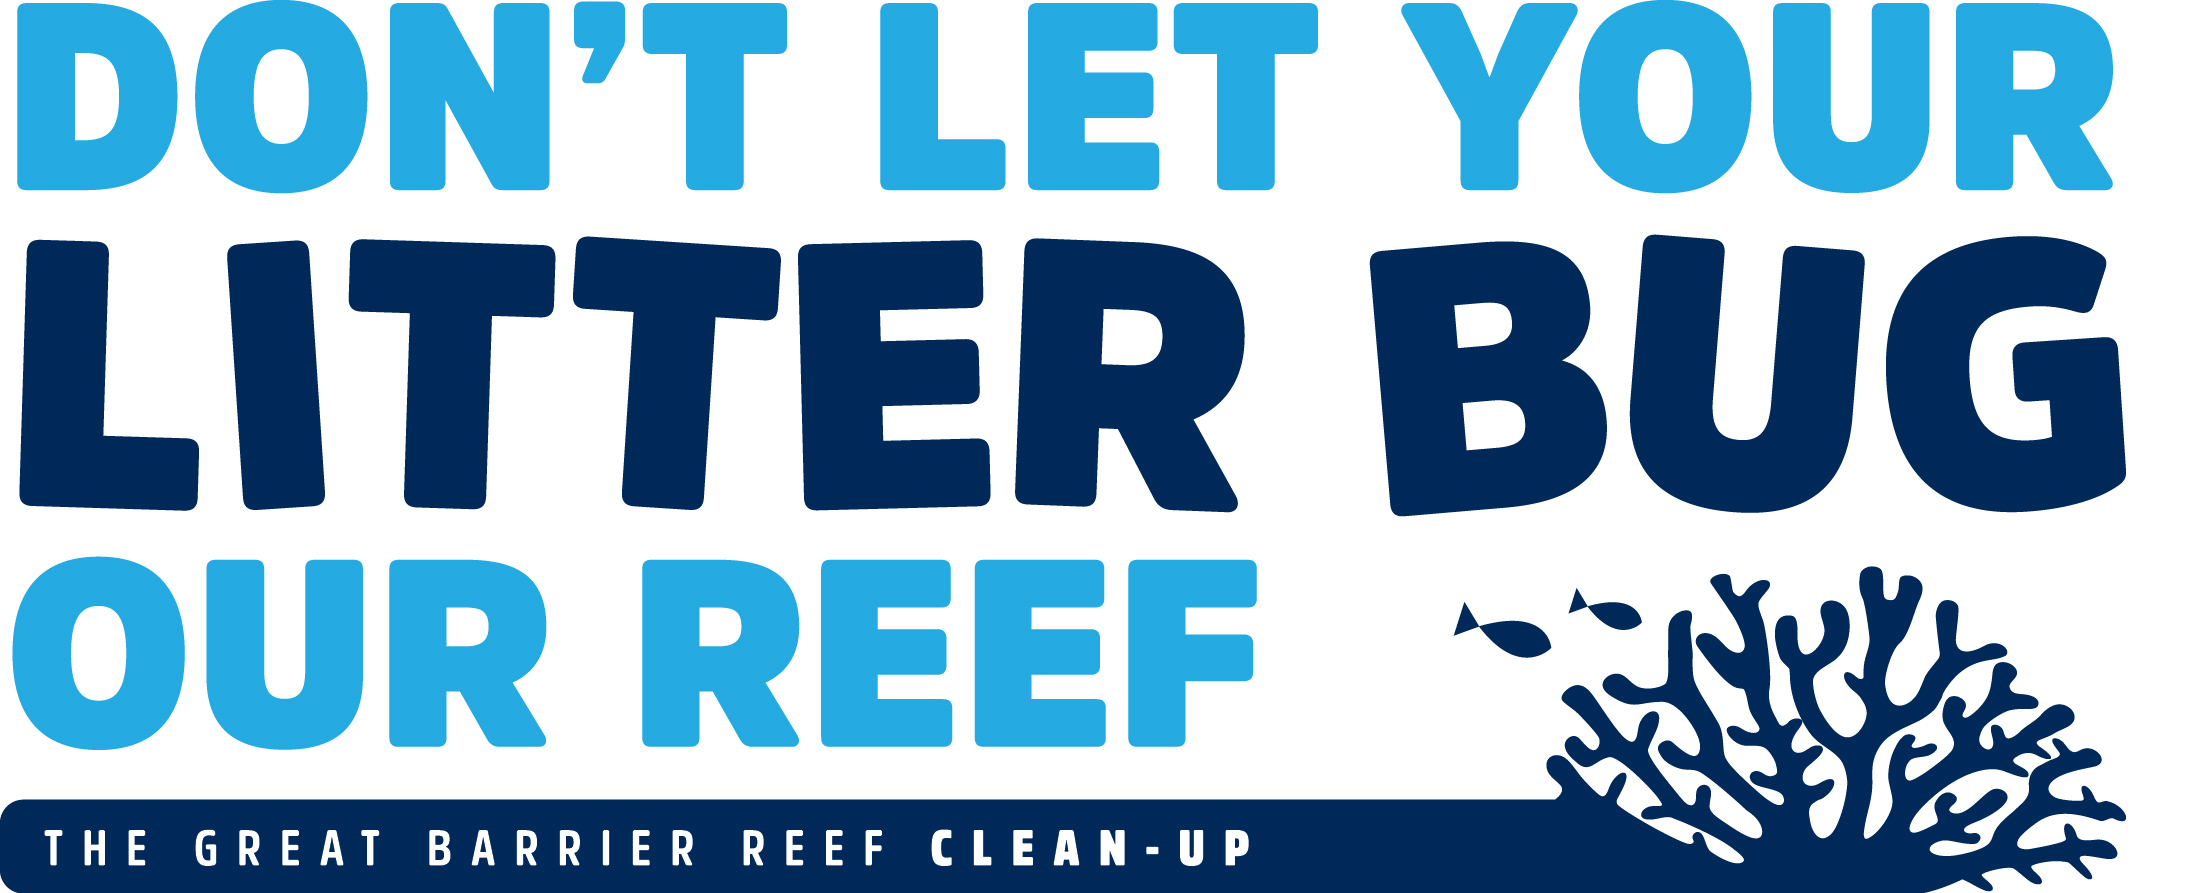 Great Barrier Reef Marine Park Authority marine debris clean up in October 2015